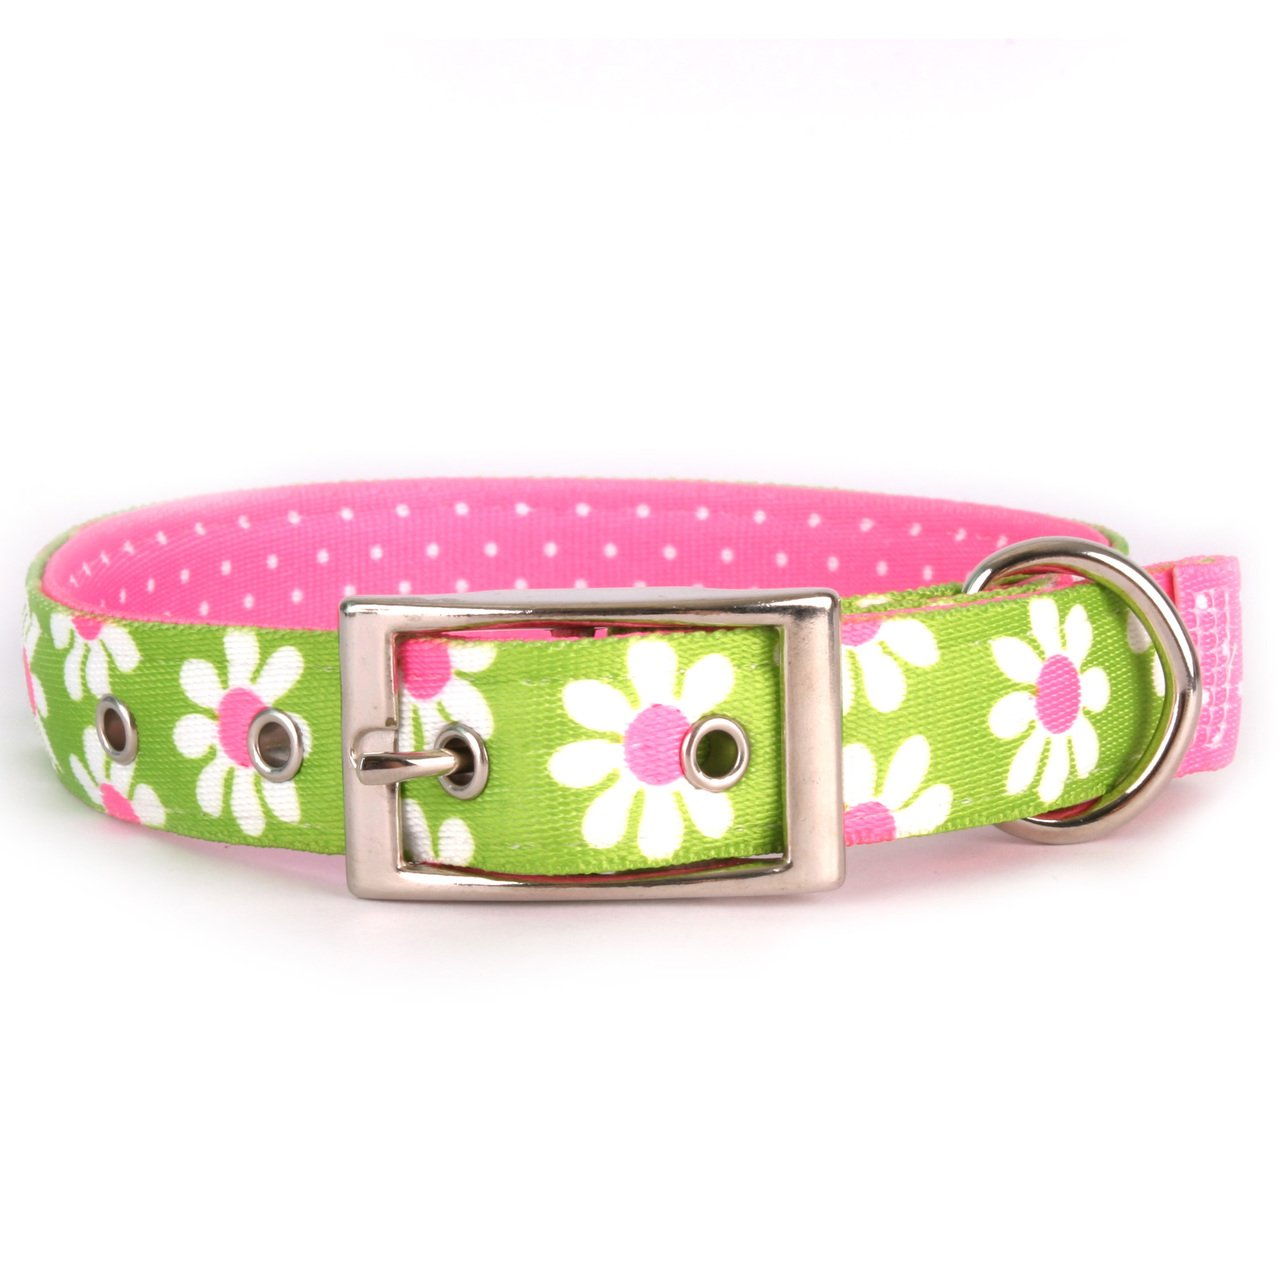 Yellow Dog Design Green Daisy Uptown Dog Collar 1'' Wide and Fits Neck 15 to 18.5'', Medium